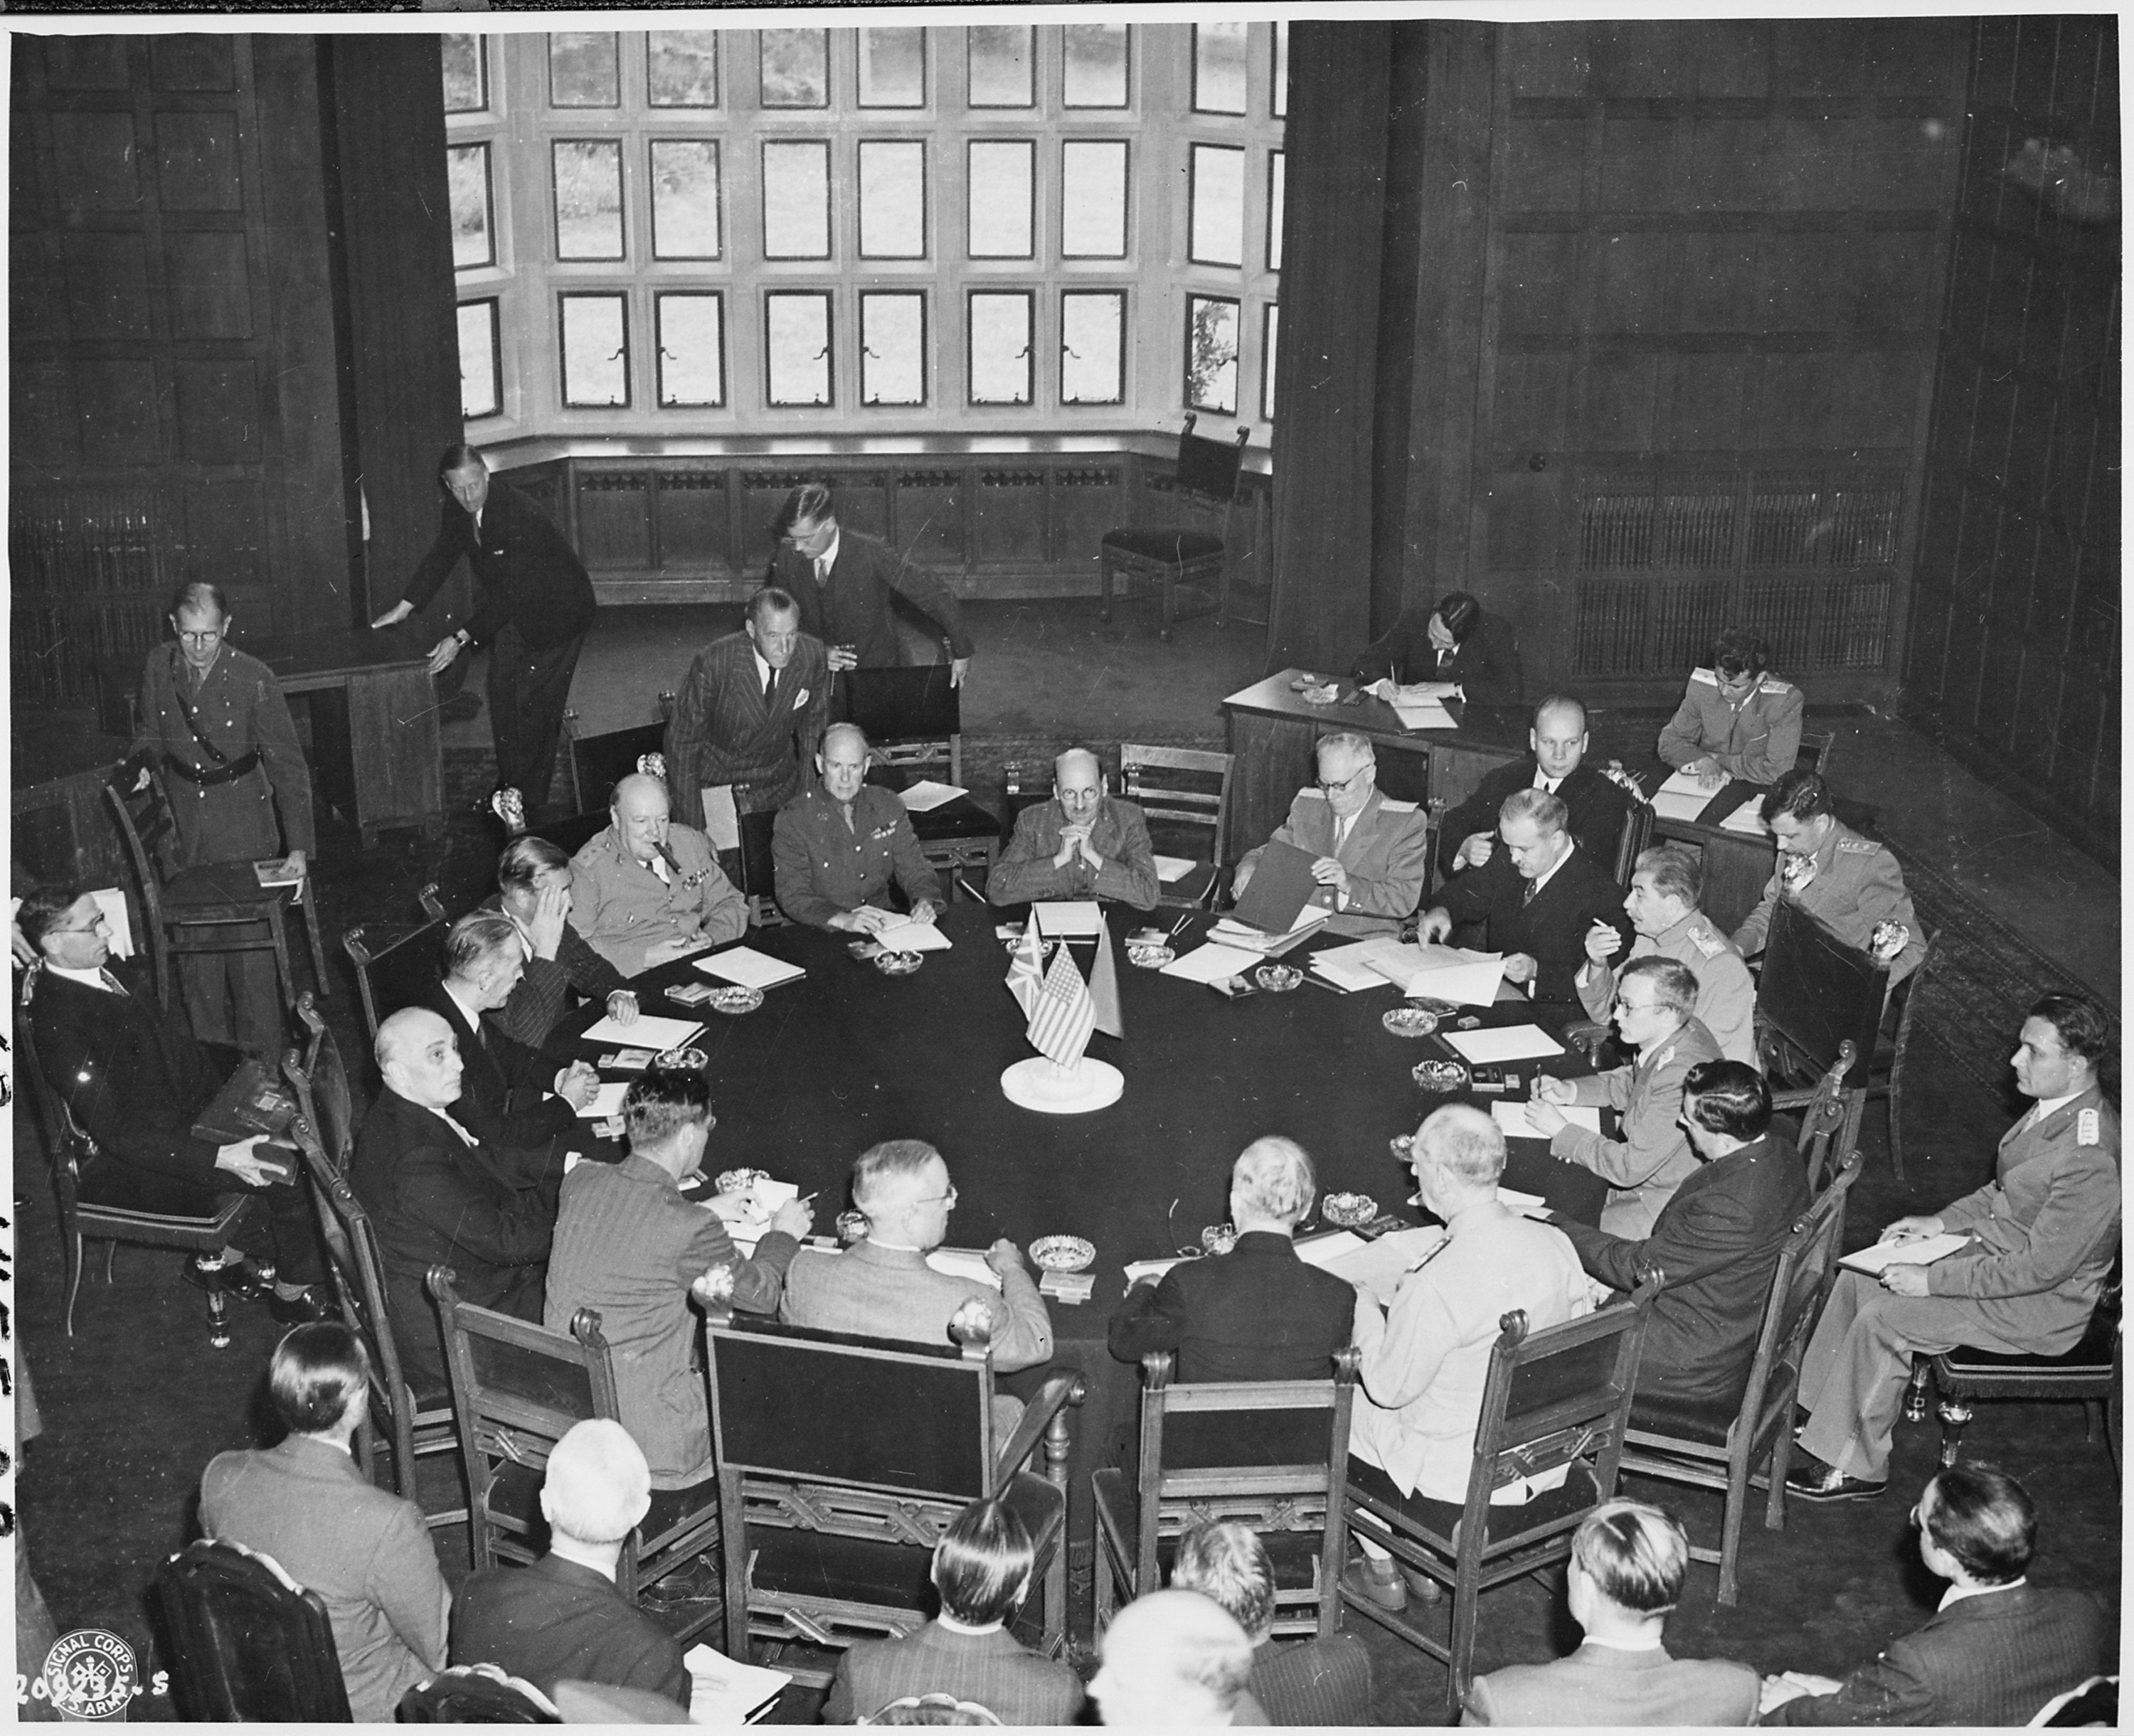 Opening_session_of_the_Potsdam_Conference_in_Potsdam,_Germany._President_Harry_S._Truman_is_seated_foreground_(back..._-_NARA_-_198799